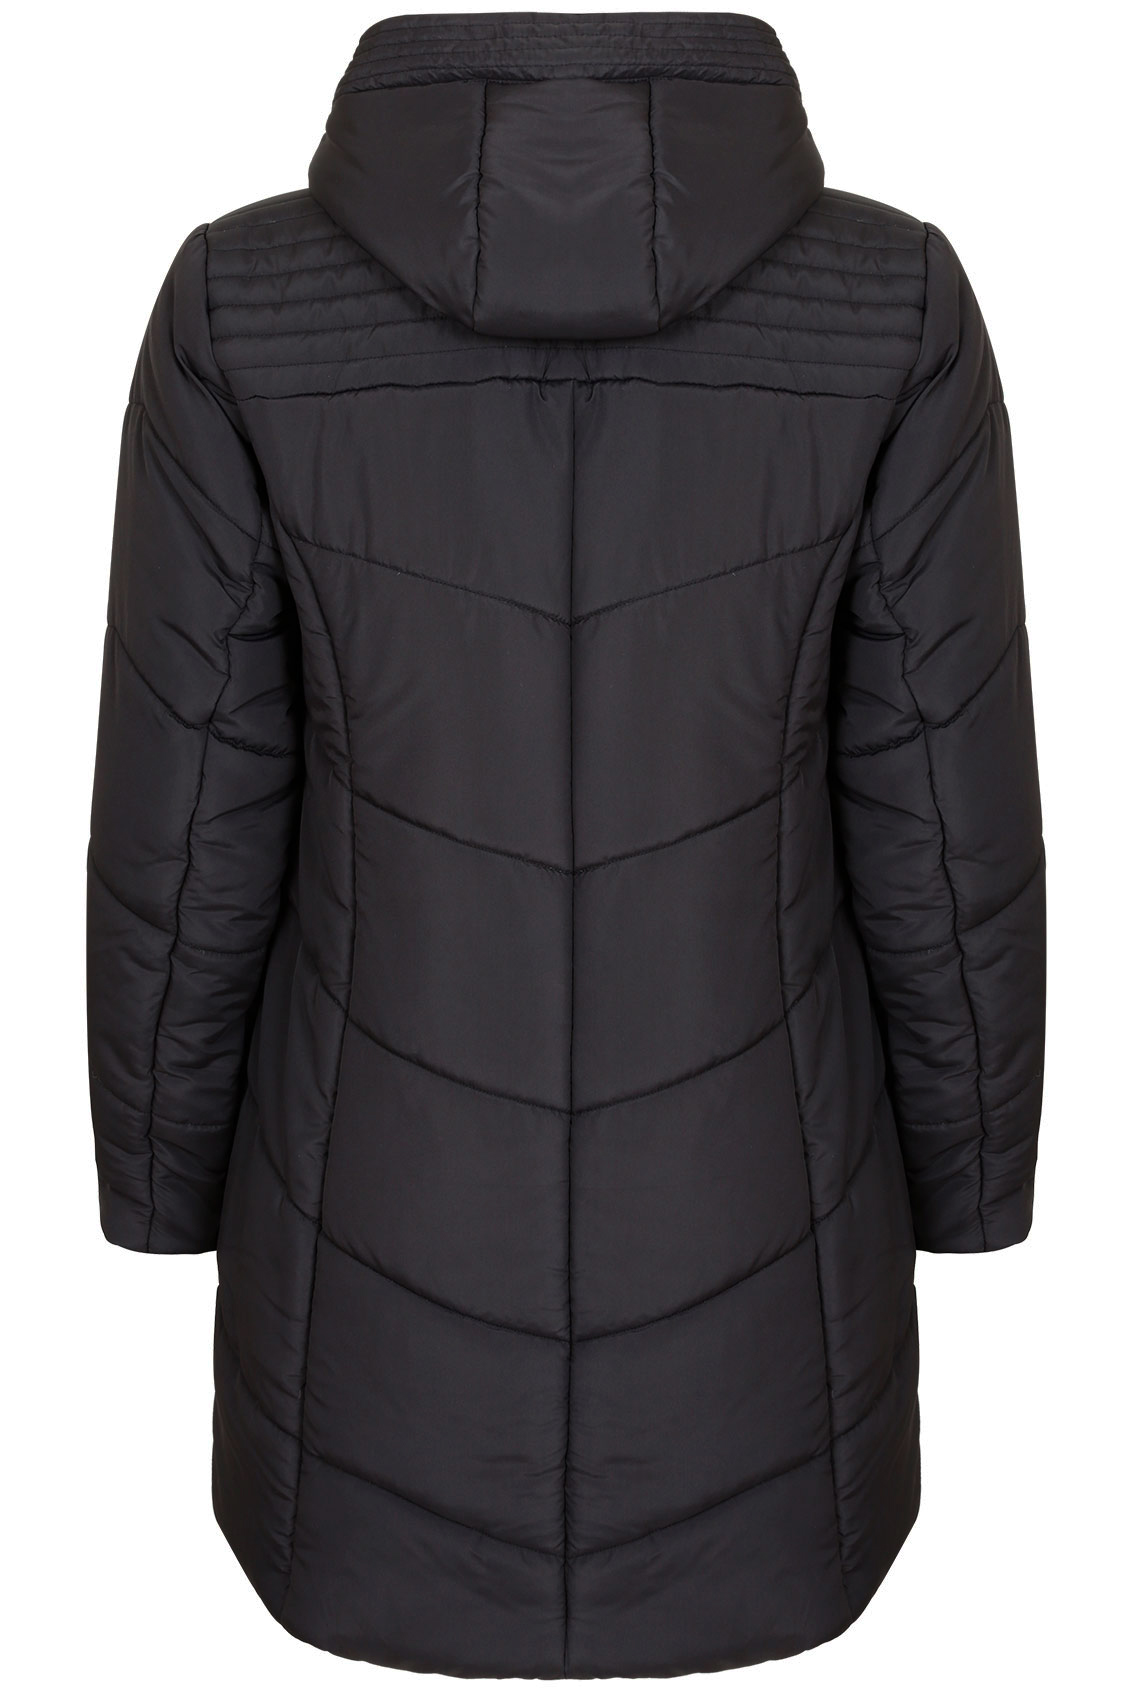 Black Padded Jacket - hitmixeoo.gq